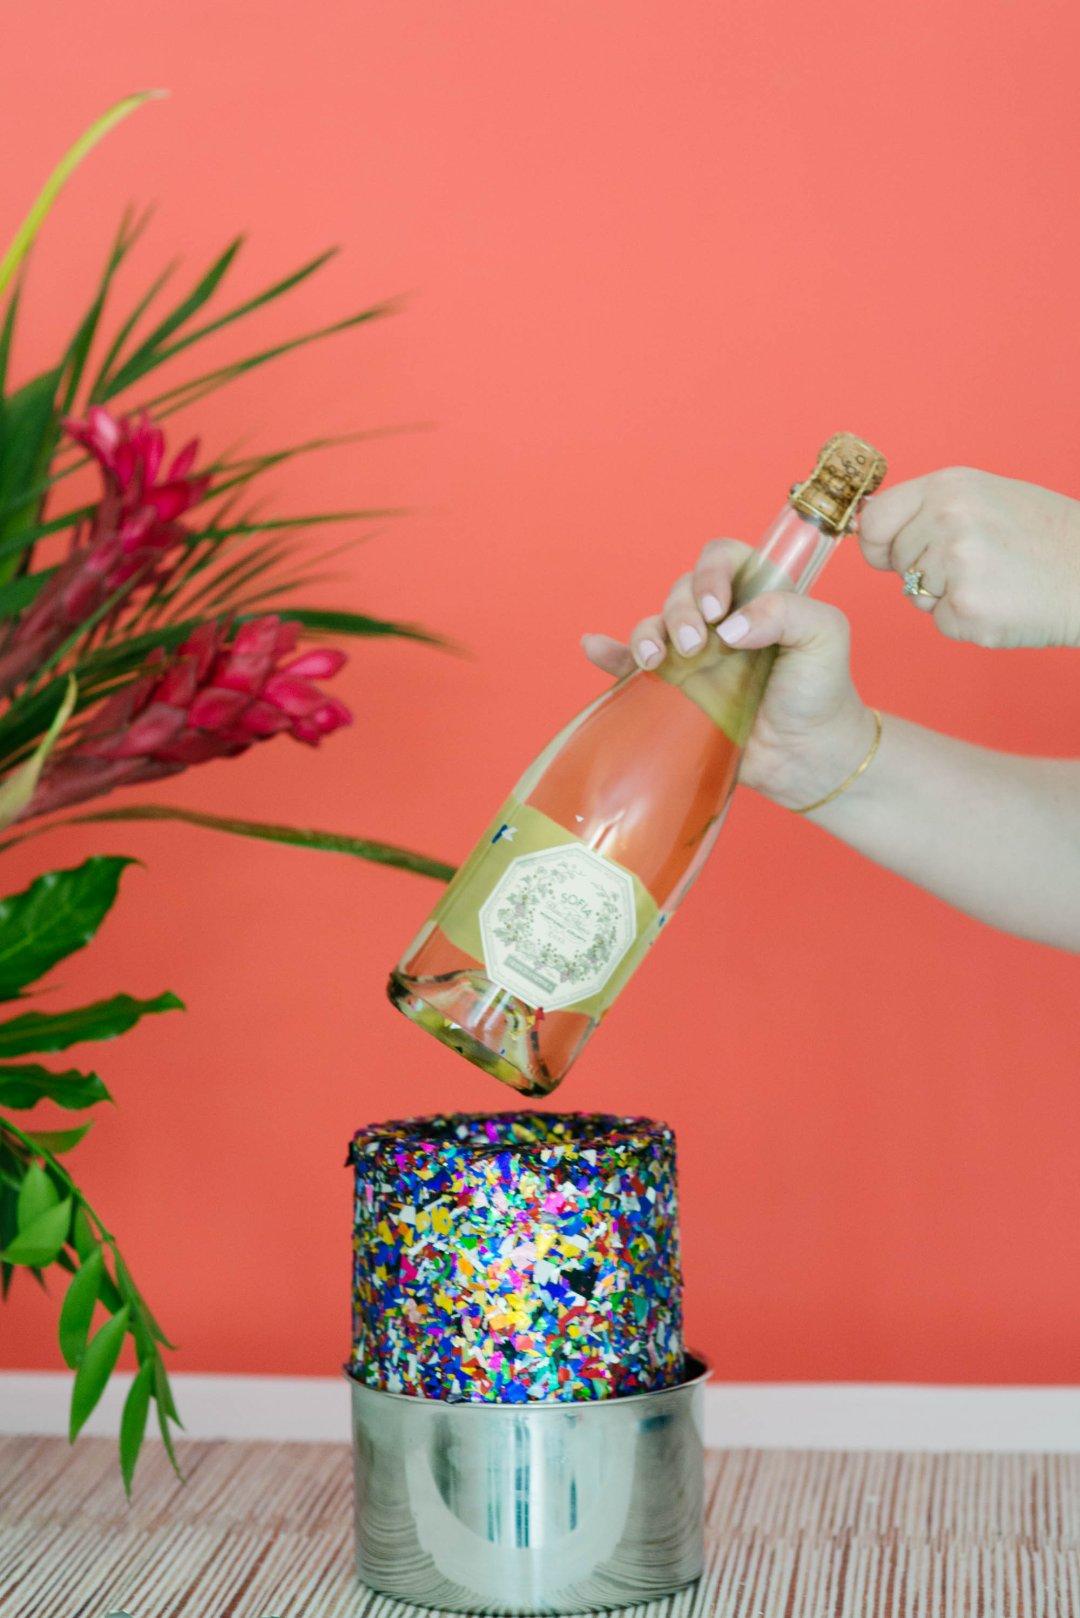 Hands popping champagne bottle out of confetti ice mold